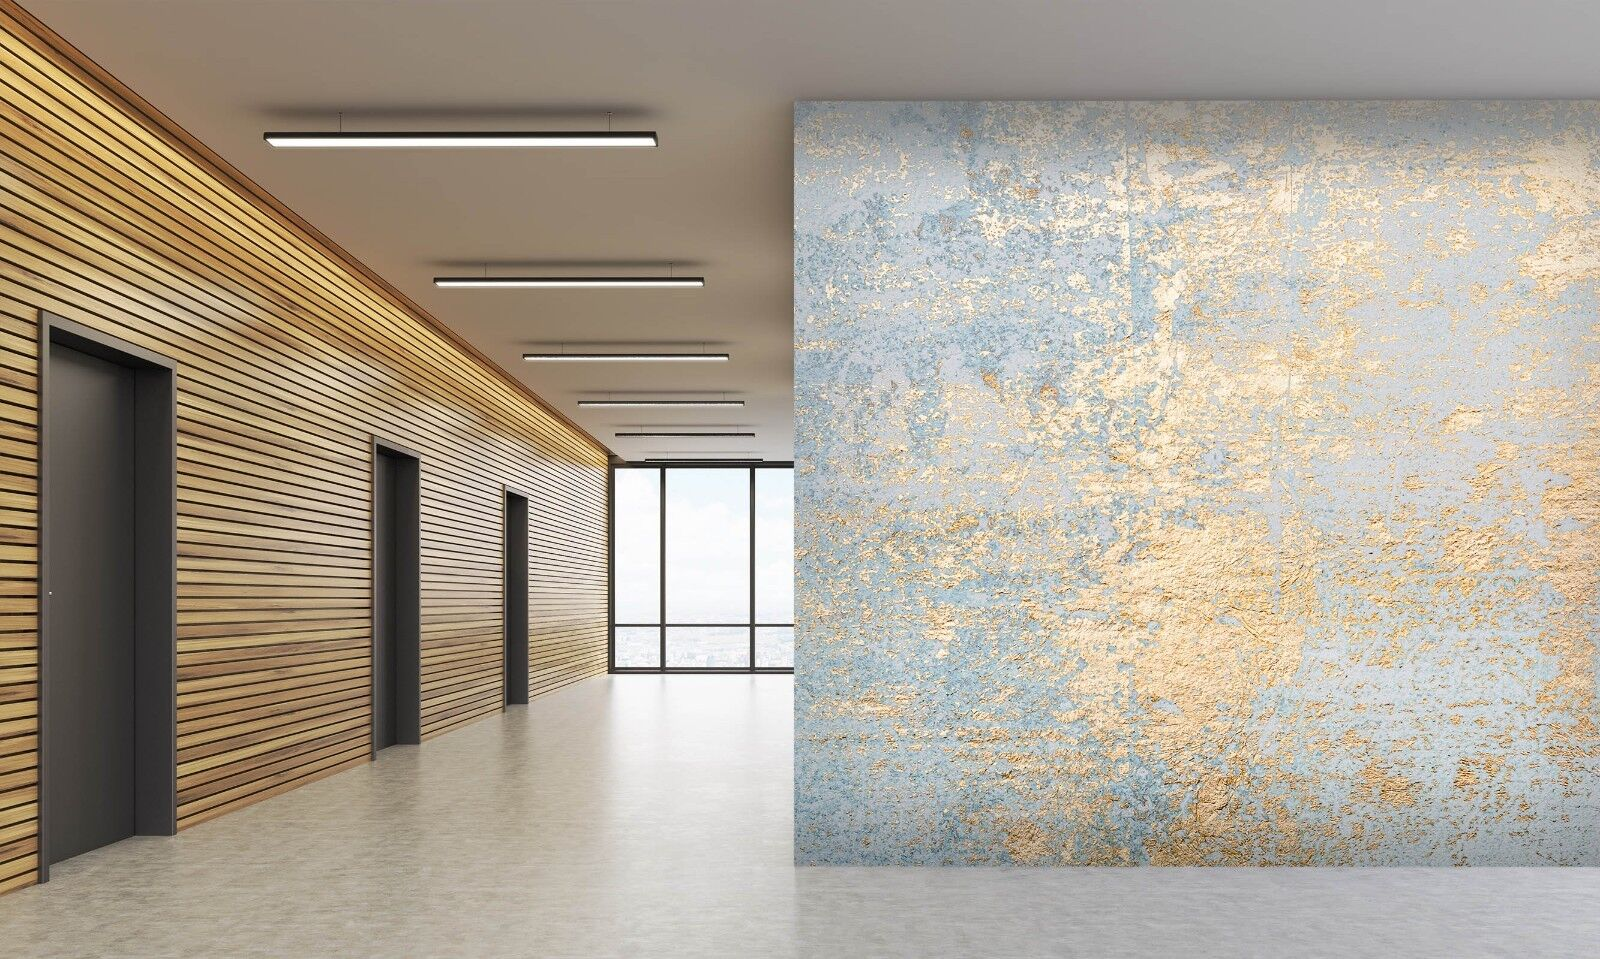 3D Abstract Gold 574 Texture Tiles Marble Wall Paper Decal Wallpaper Mural